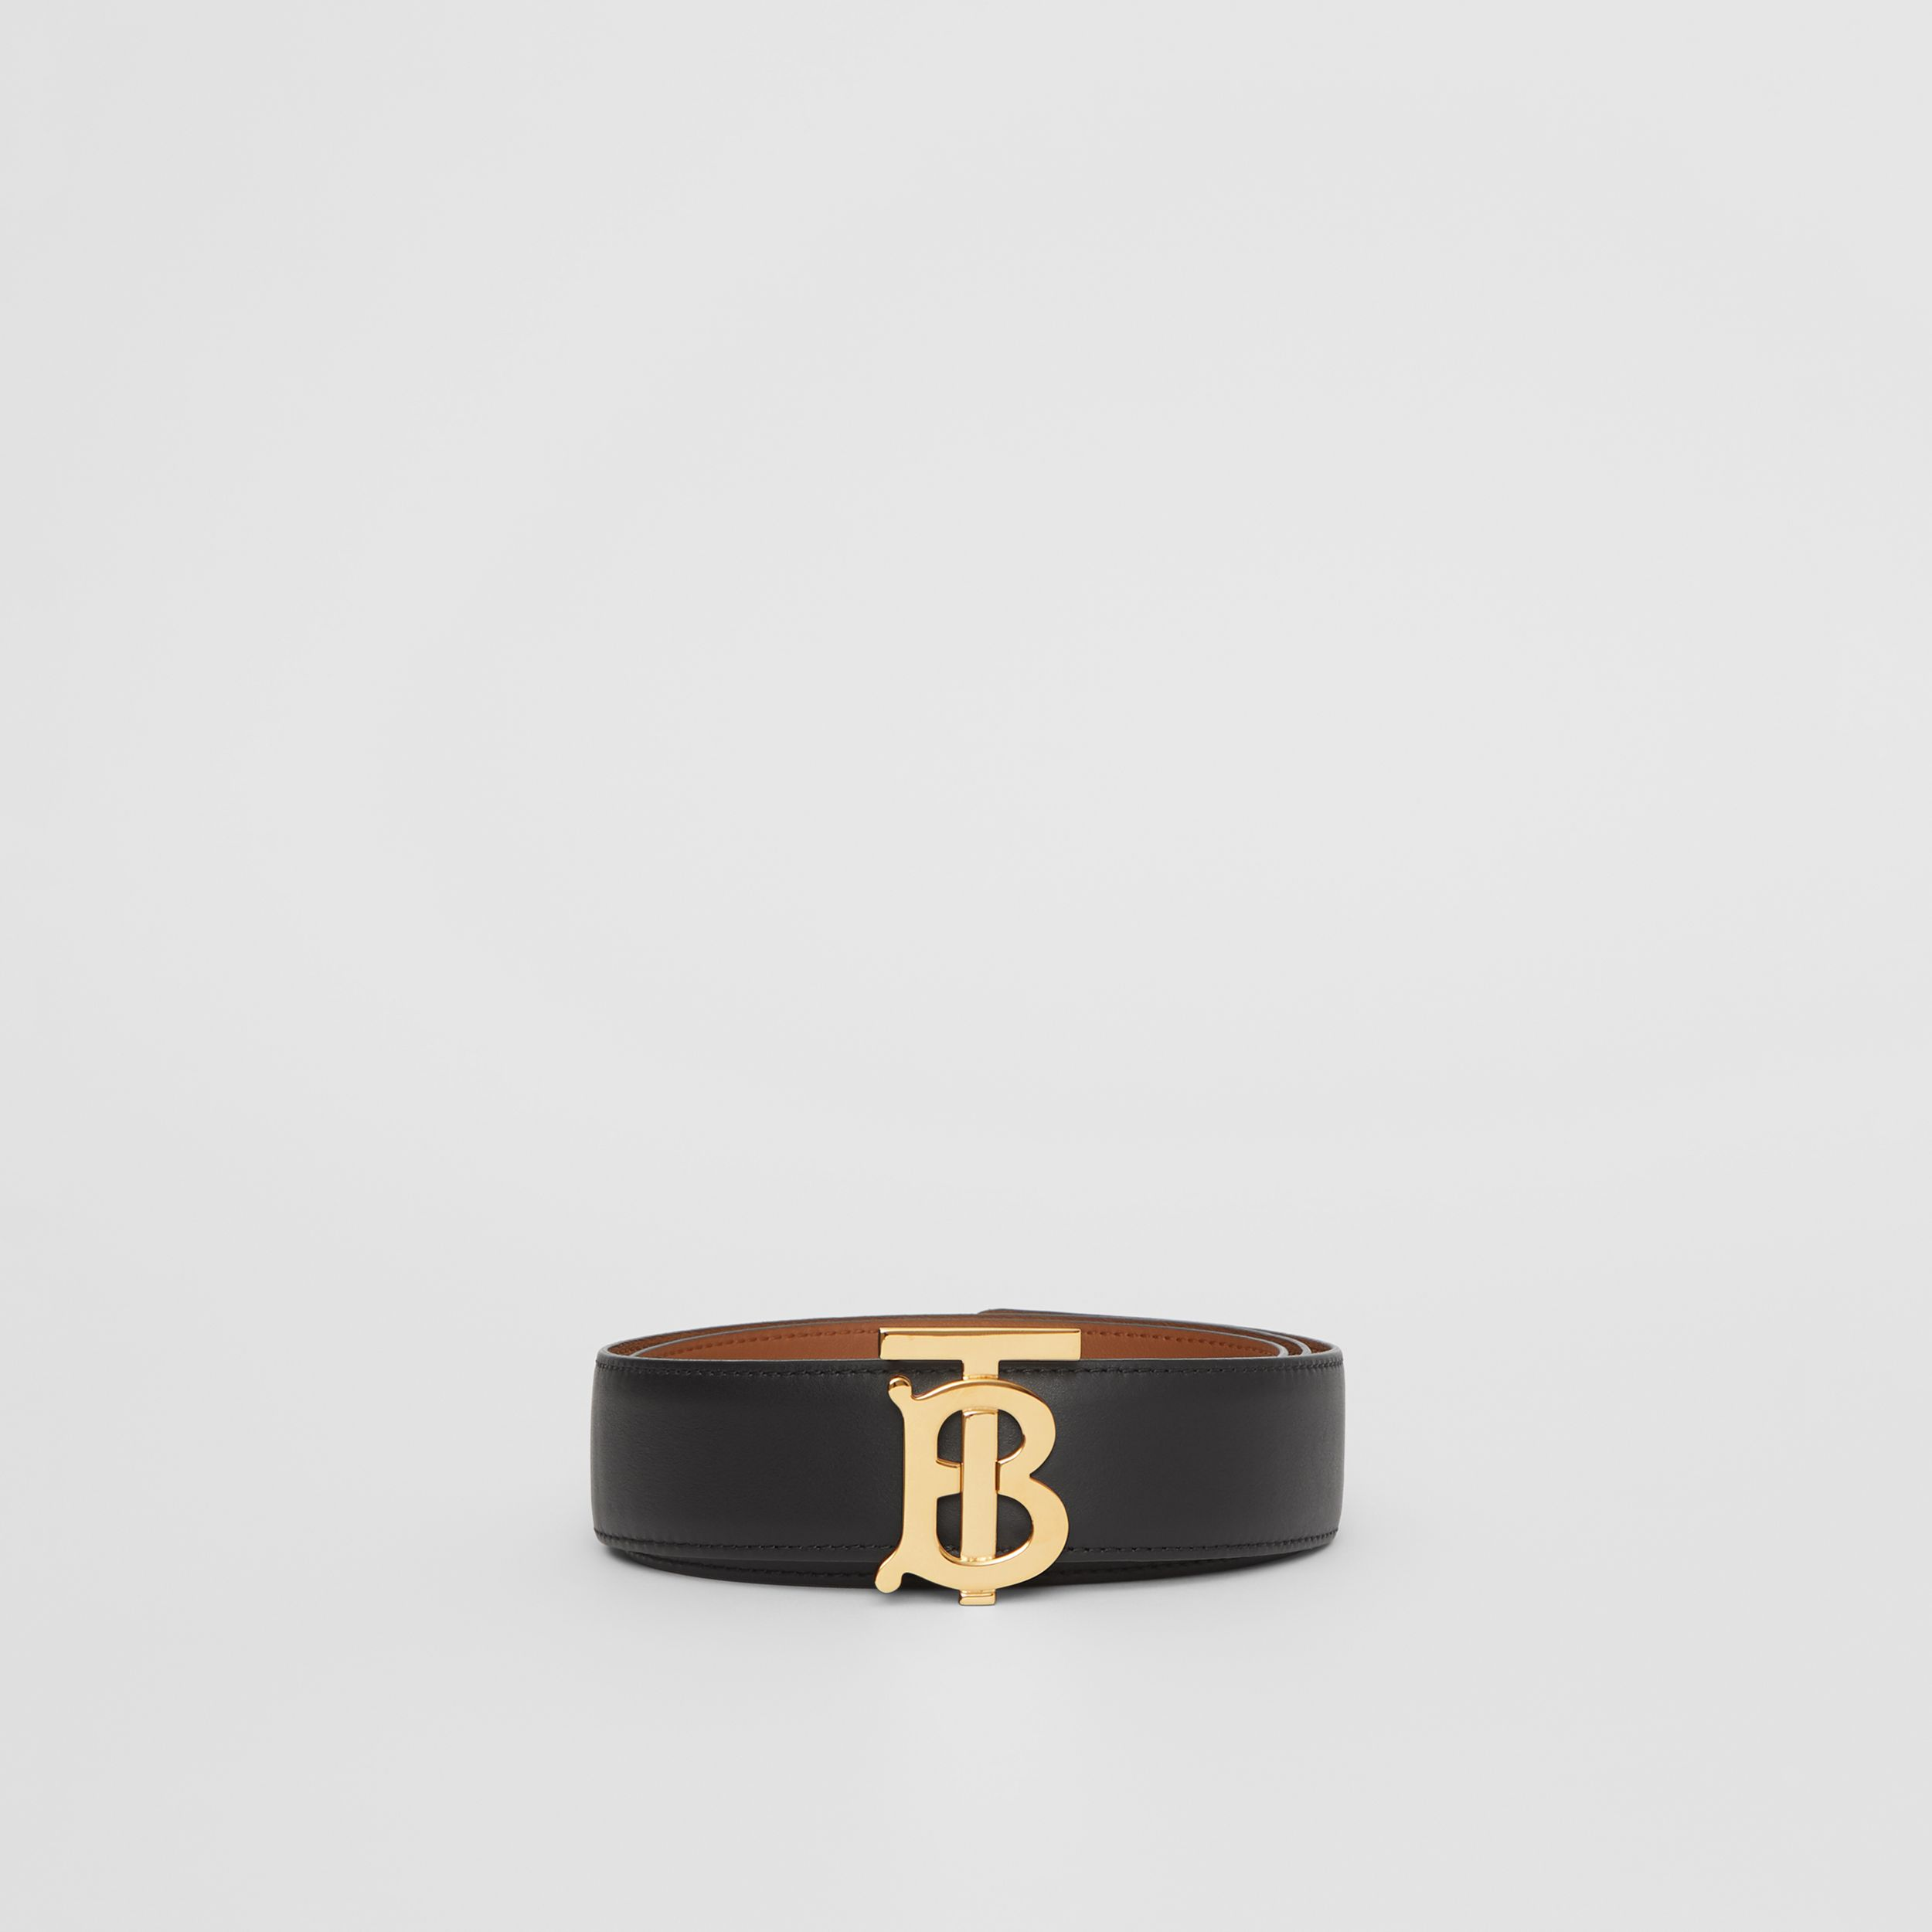 Reversible Monogram Motif Leather Belt in Black/malt Brown - Women | Burberry - 4